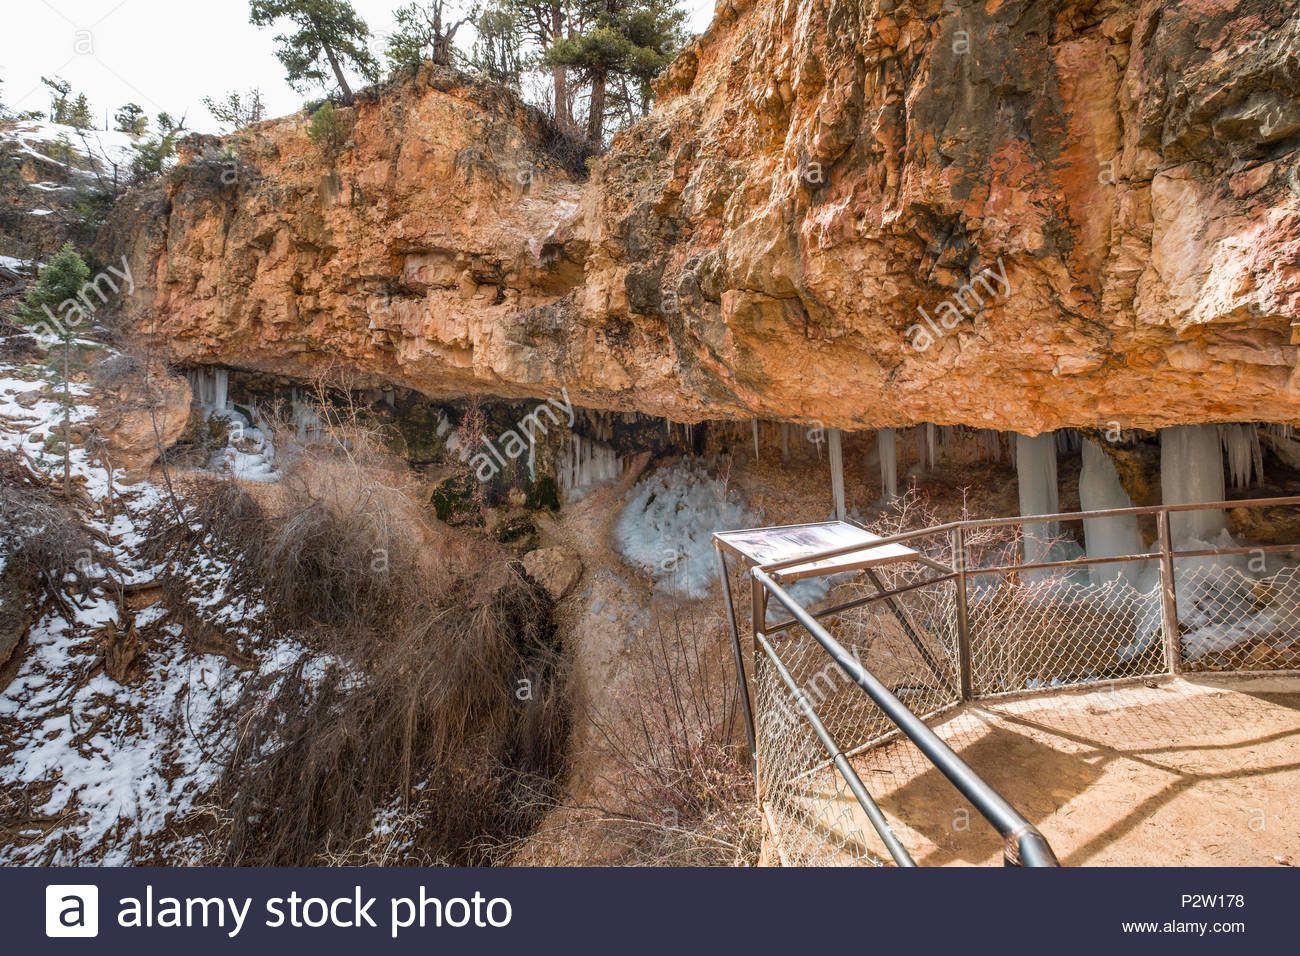 Fence and sign outside Mossy Cave shelter cave grotto, Bryce Canyon National Park, Garfield County, Utah, USA - Stock Image